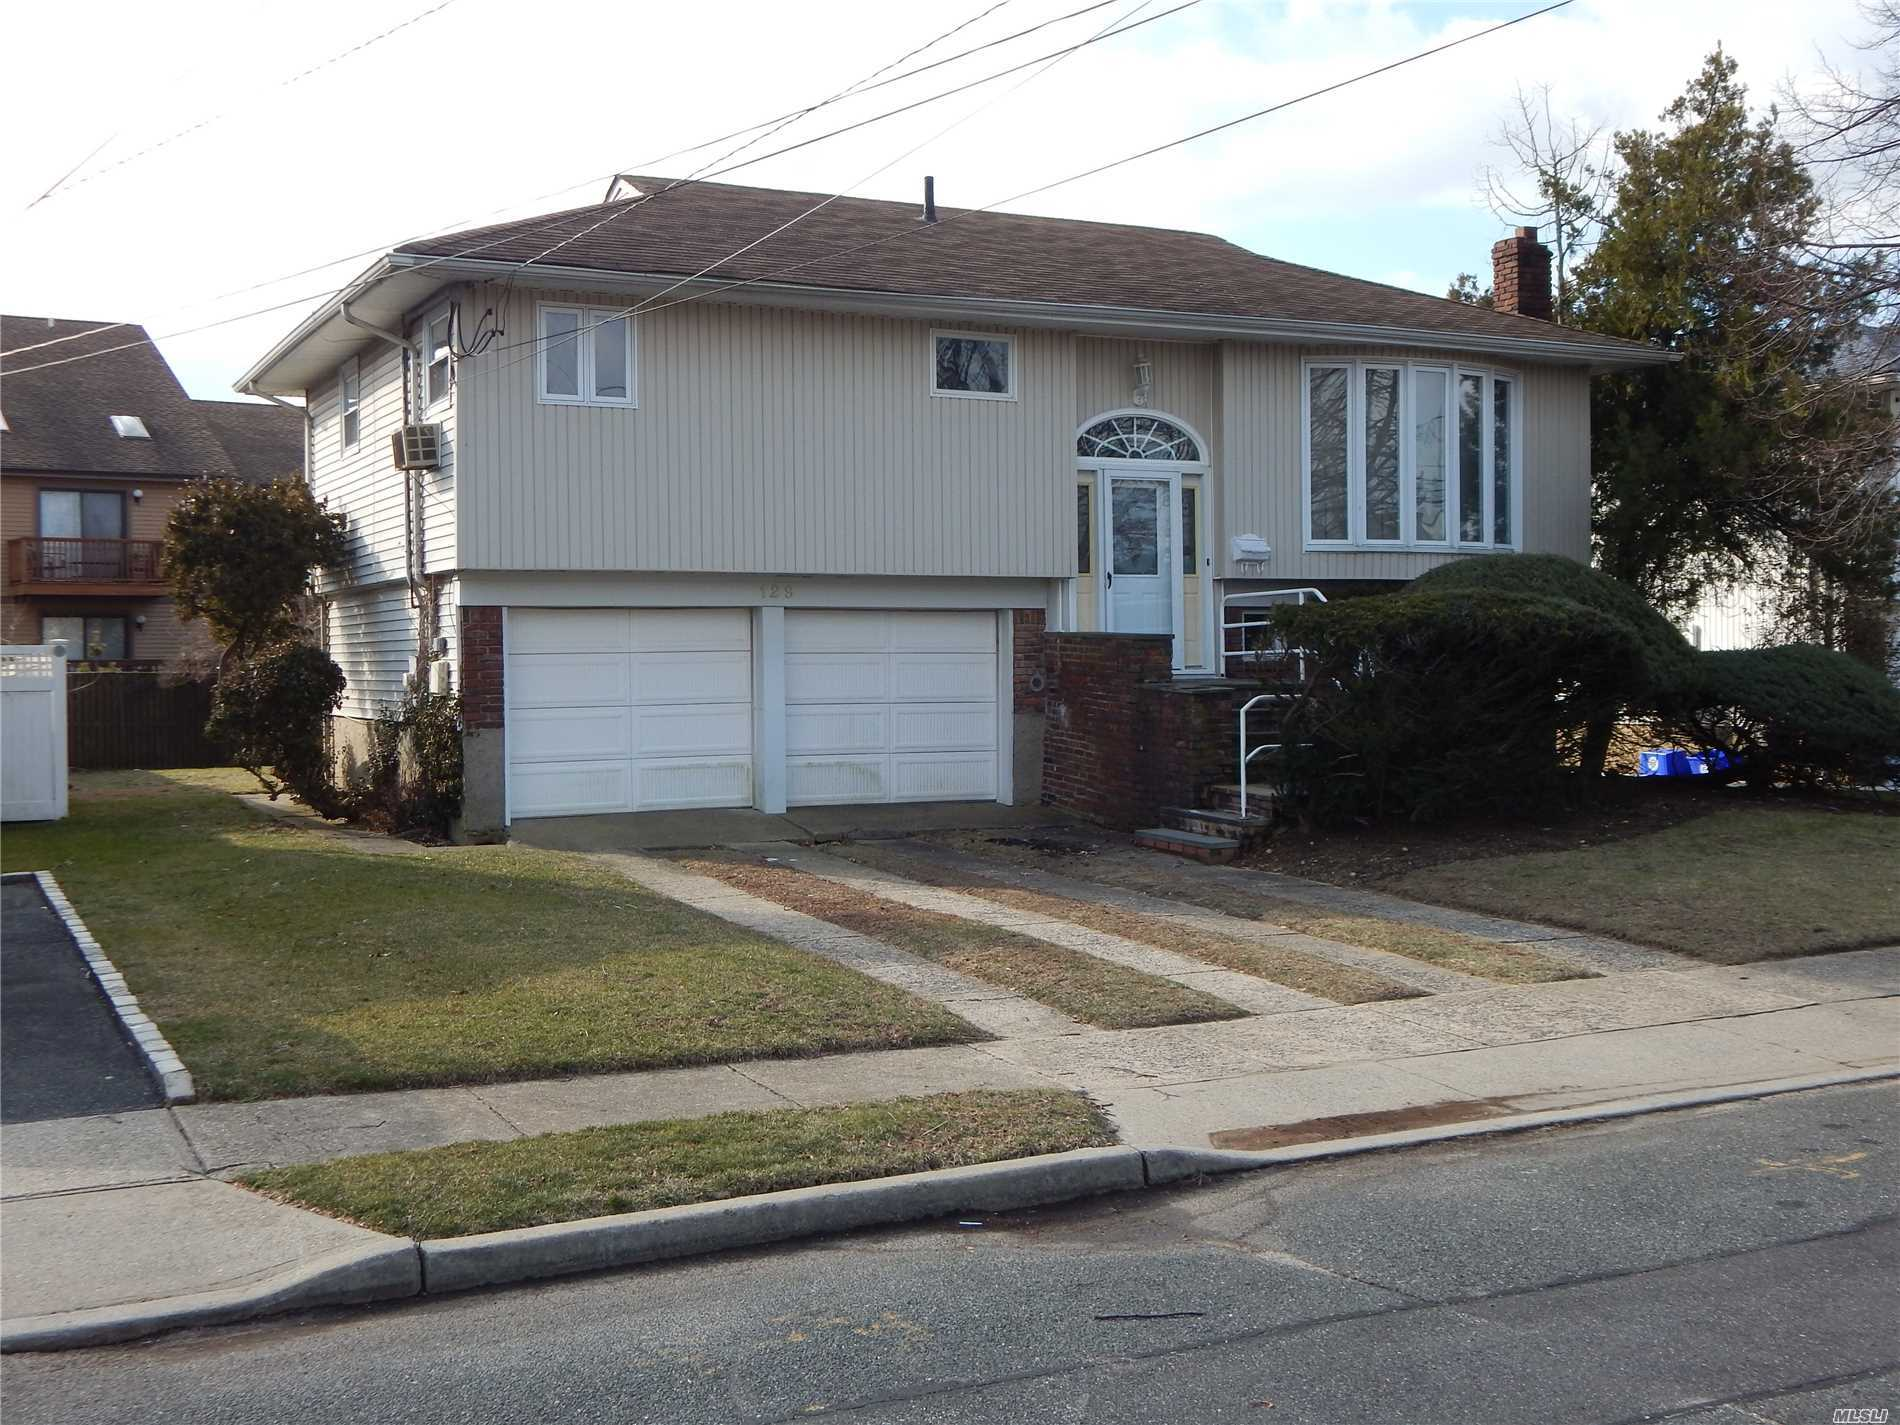 Ocean Lea Section Hardwood Floors Throughout Mostly Updated Windows, Siding, Bathrooms And Oil Heating System With Above Ground Tank. Open Floor Plan Up With Generous Living Room, Formal Dinning Area, Eat In Kitchen With Ose To Rear Deck And Patio.Yard. Main Level Den With Sliders To Patio And Yard Plus Full Bath With Additional Laundry Room And Storage Area.